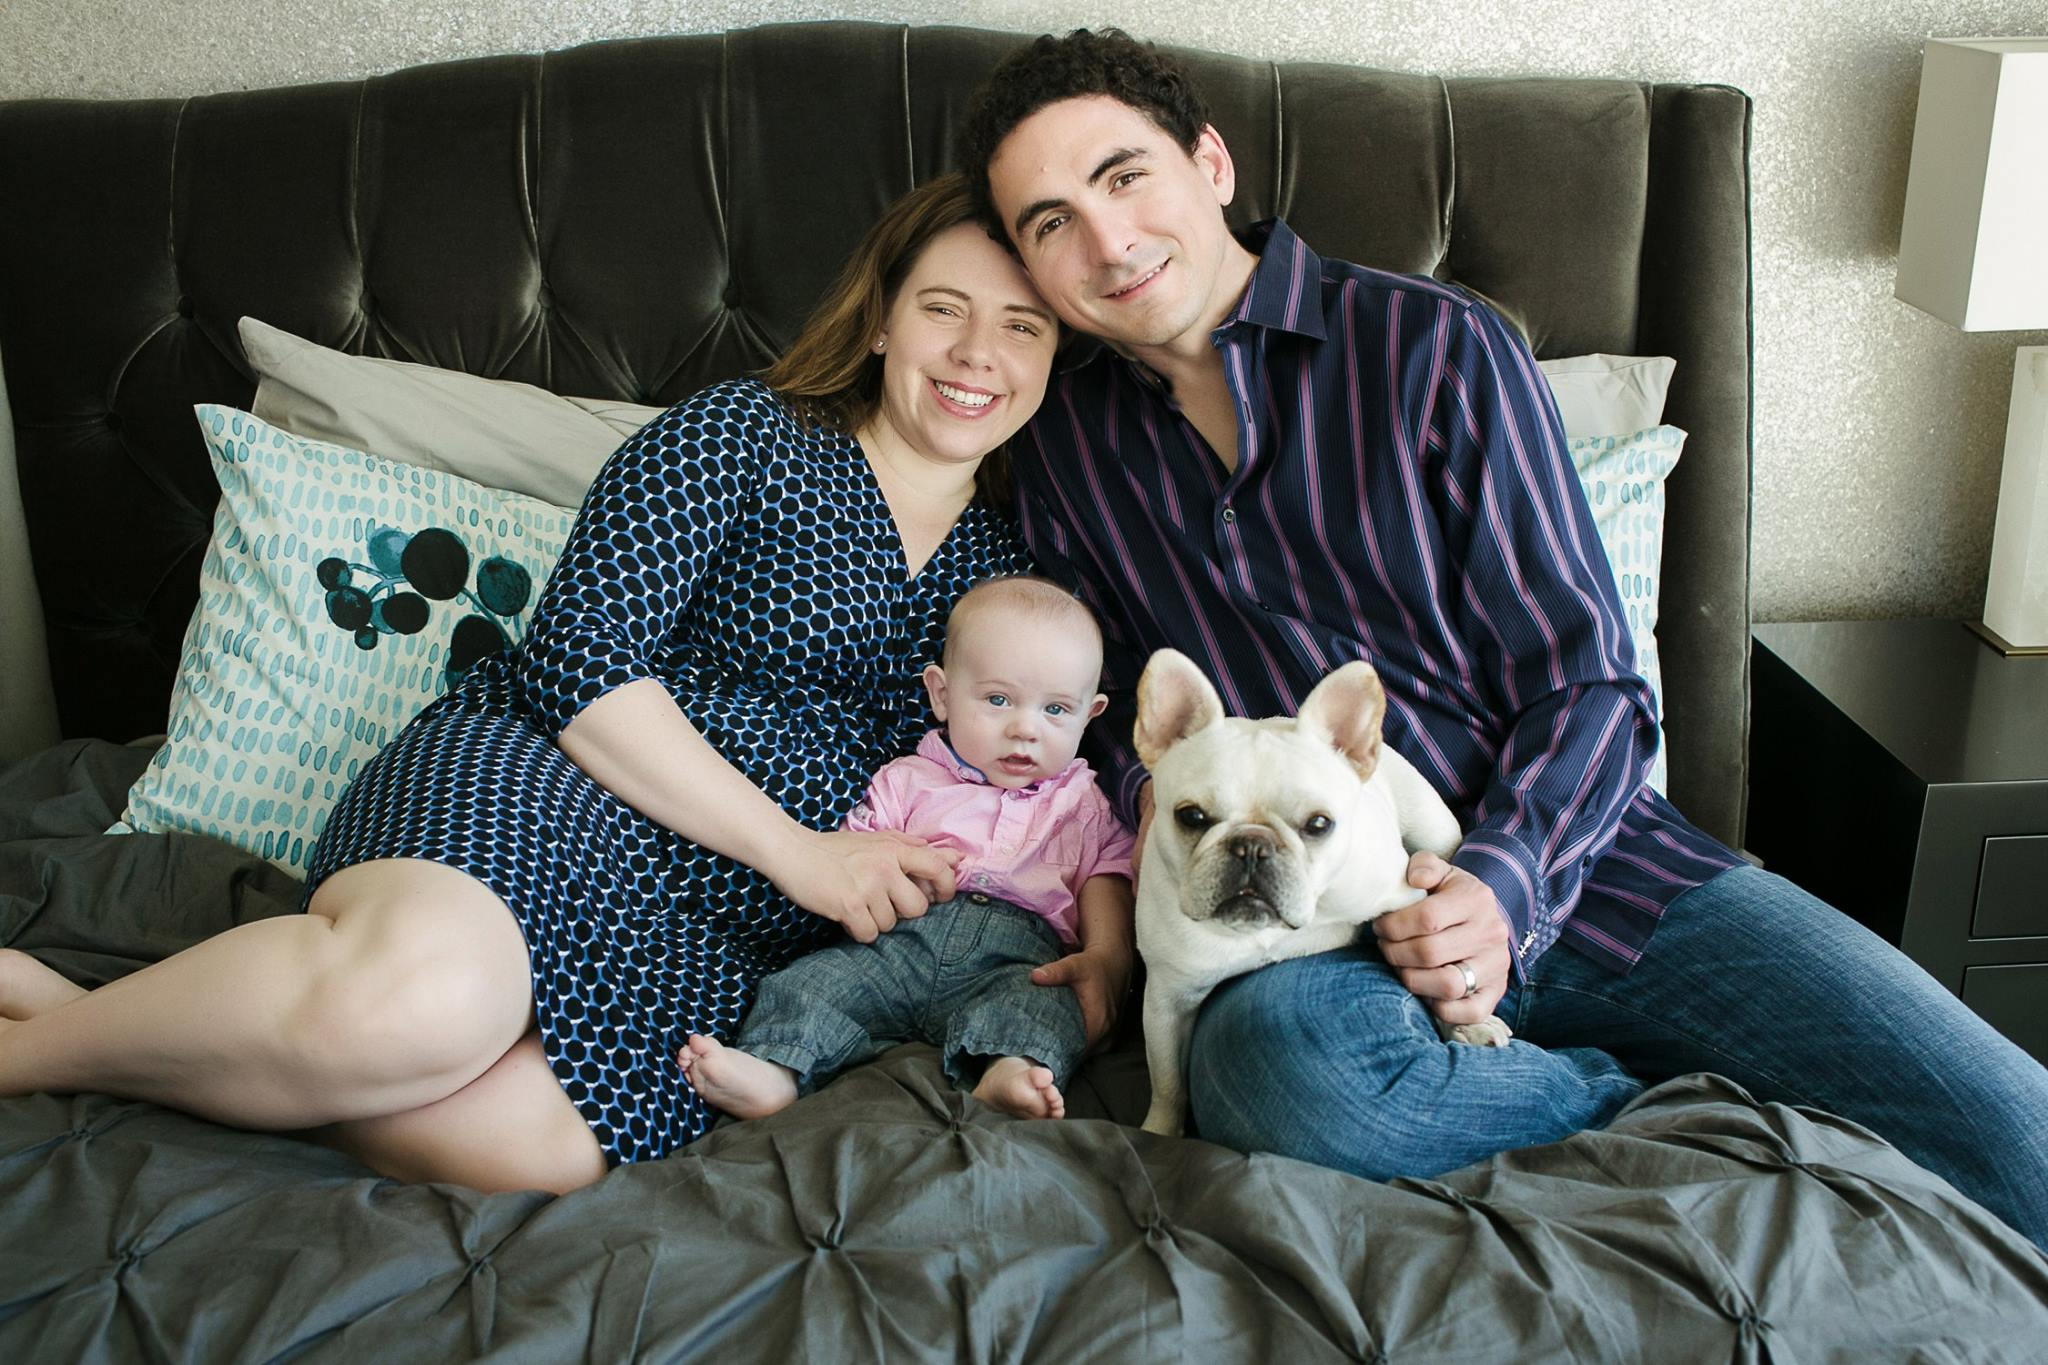 This picture is a little old, but I can't help but use it--it's just so cute!